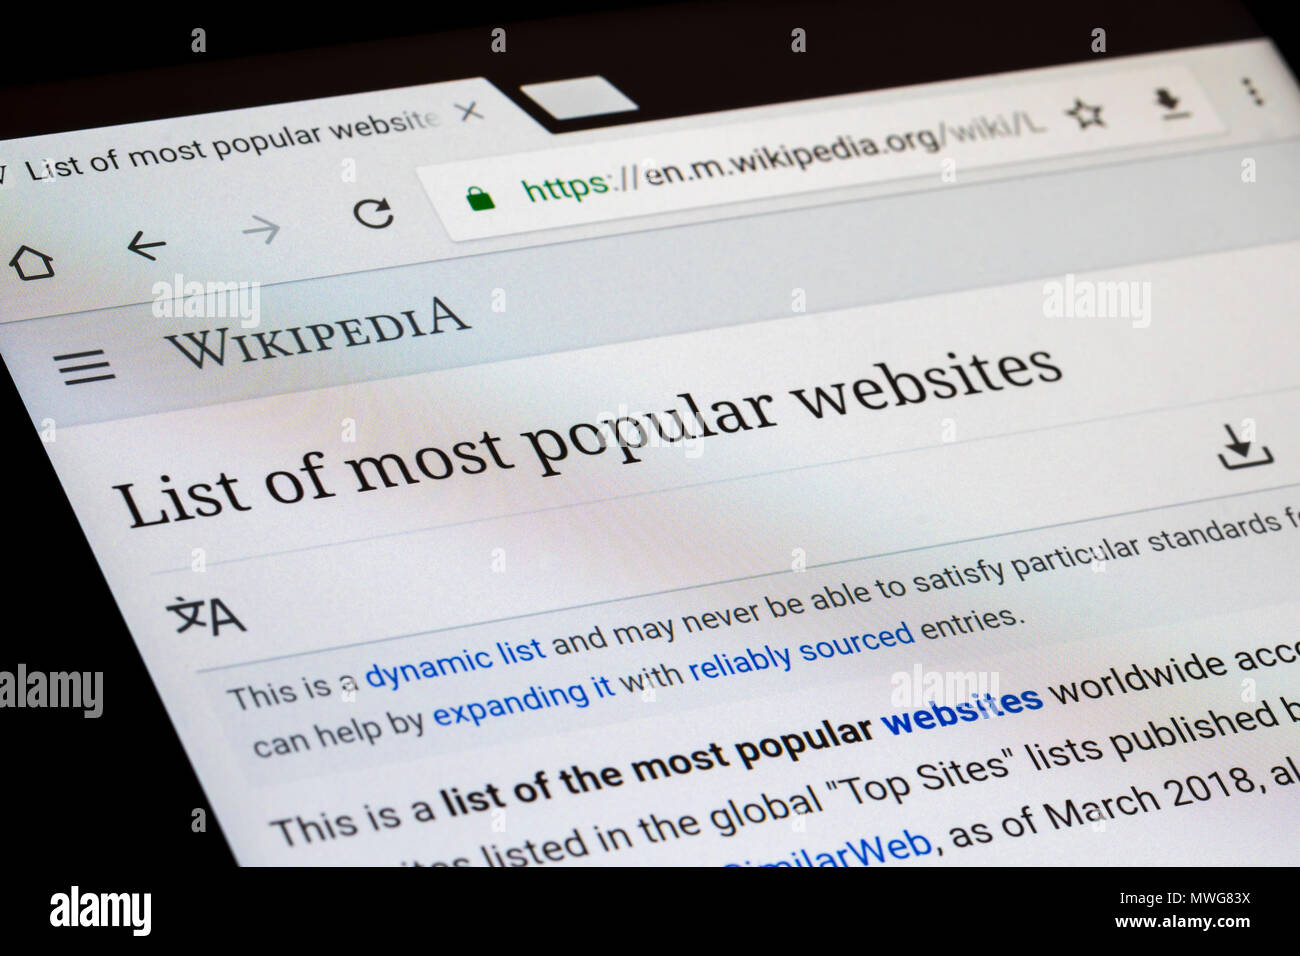 Wikipedia Internet website on a tablet. - Stock Image